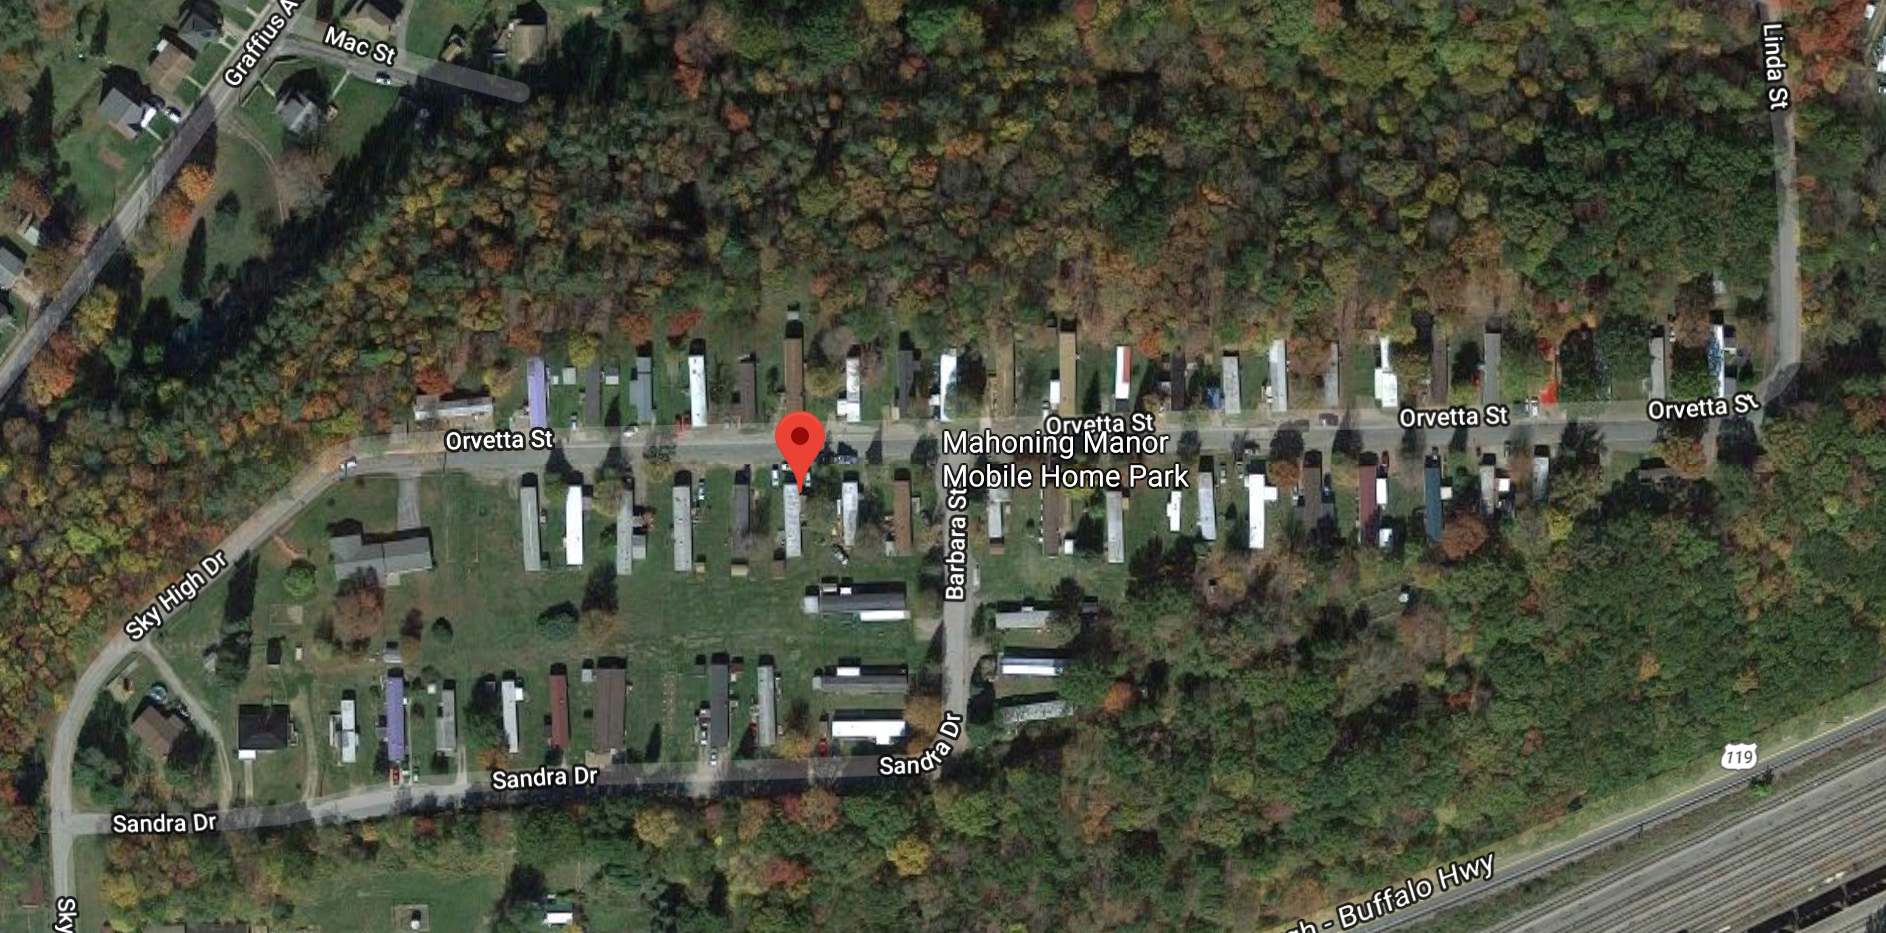 Mahoning manor mobile home park in Punxsutawney, PA